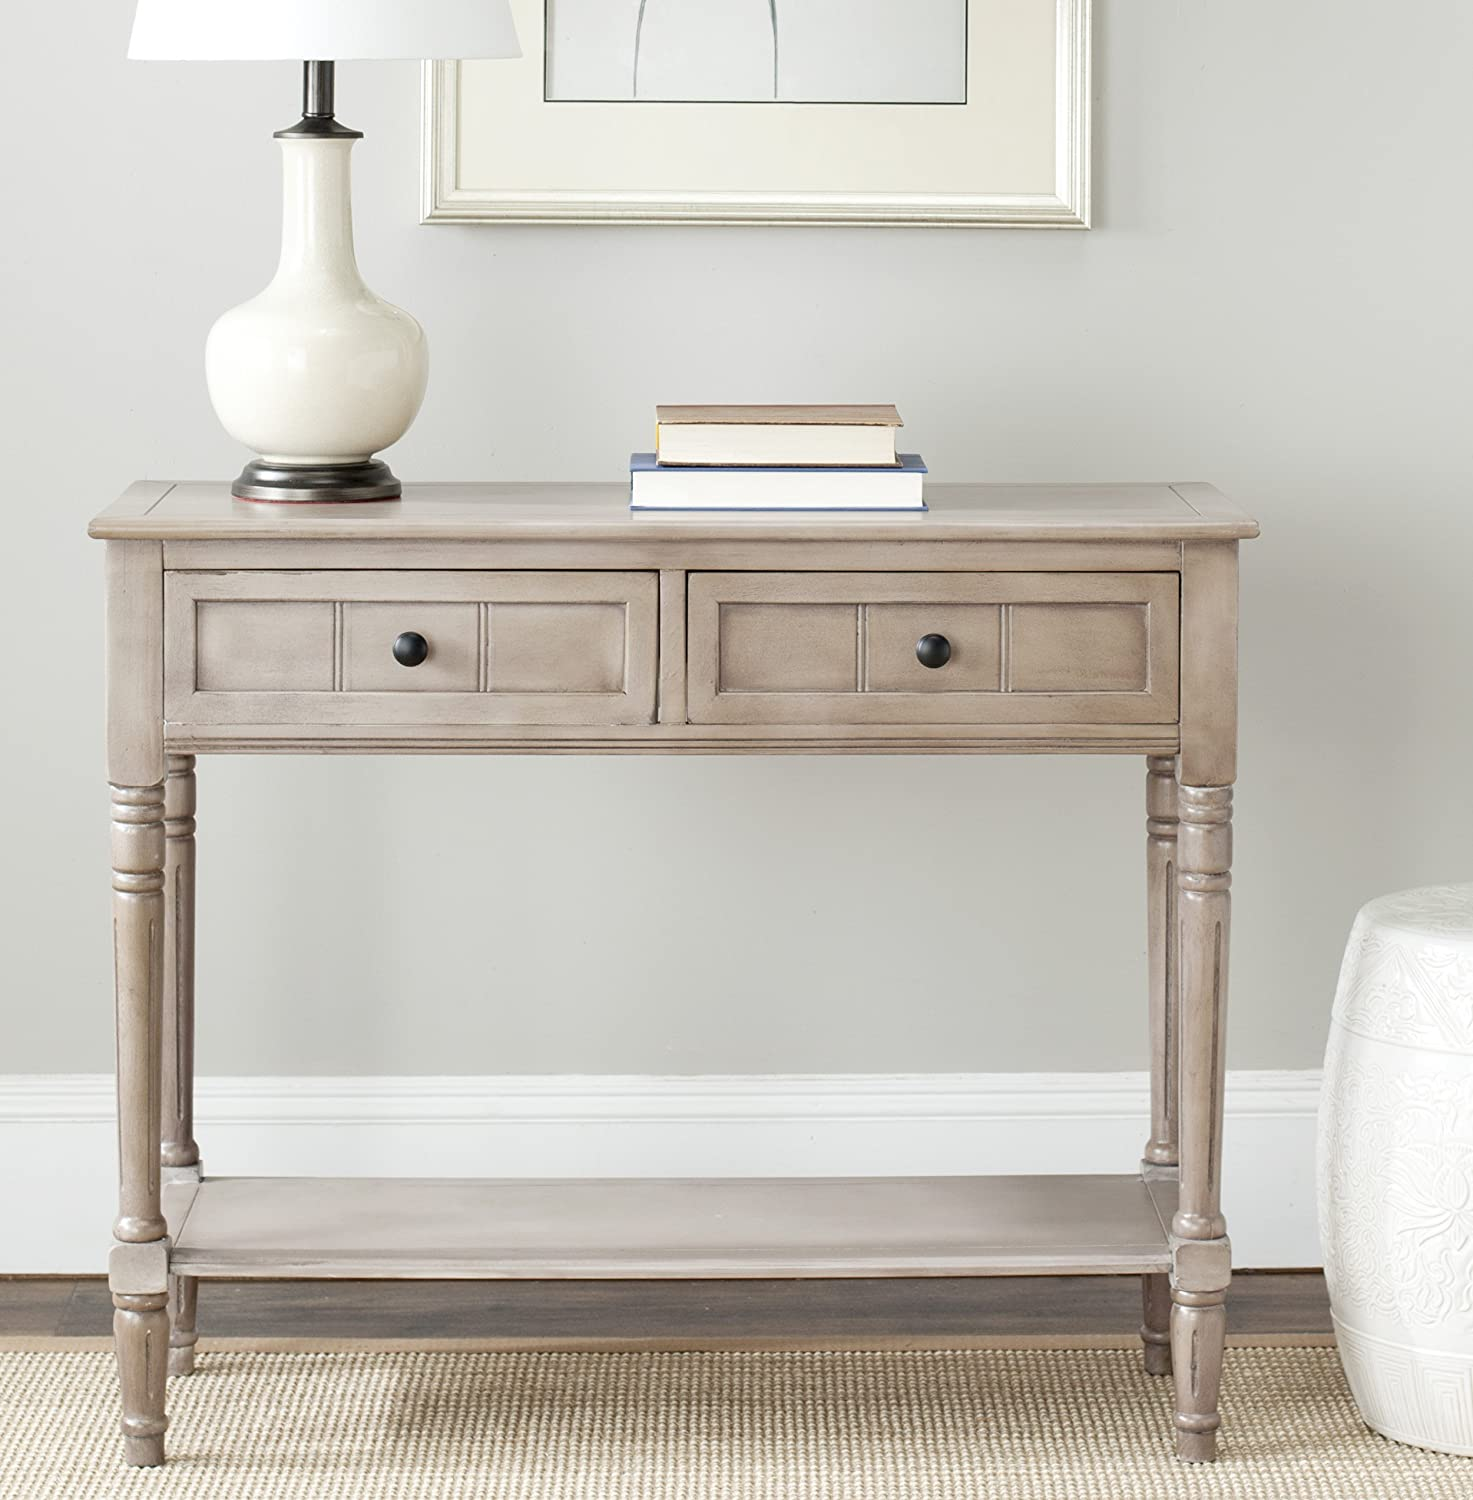 Safavieh American Homes Collection Samantha Vintage Grey 2-Drawer Console Table: Furniture & Decor